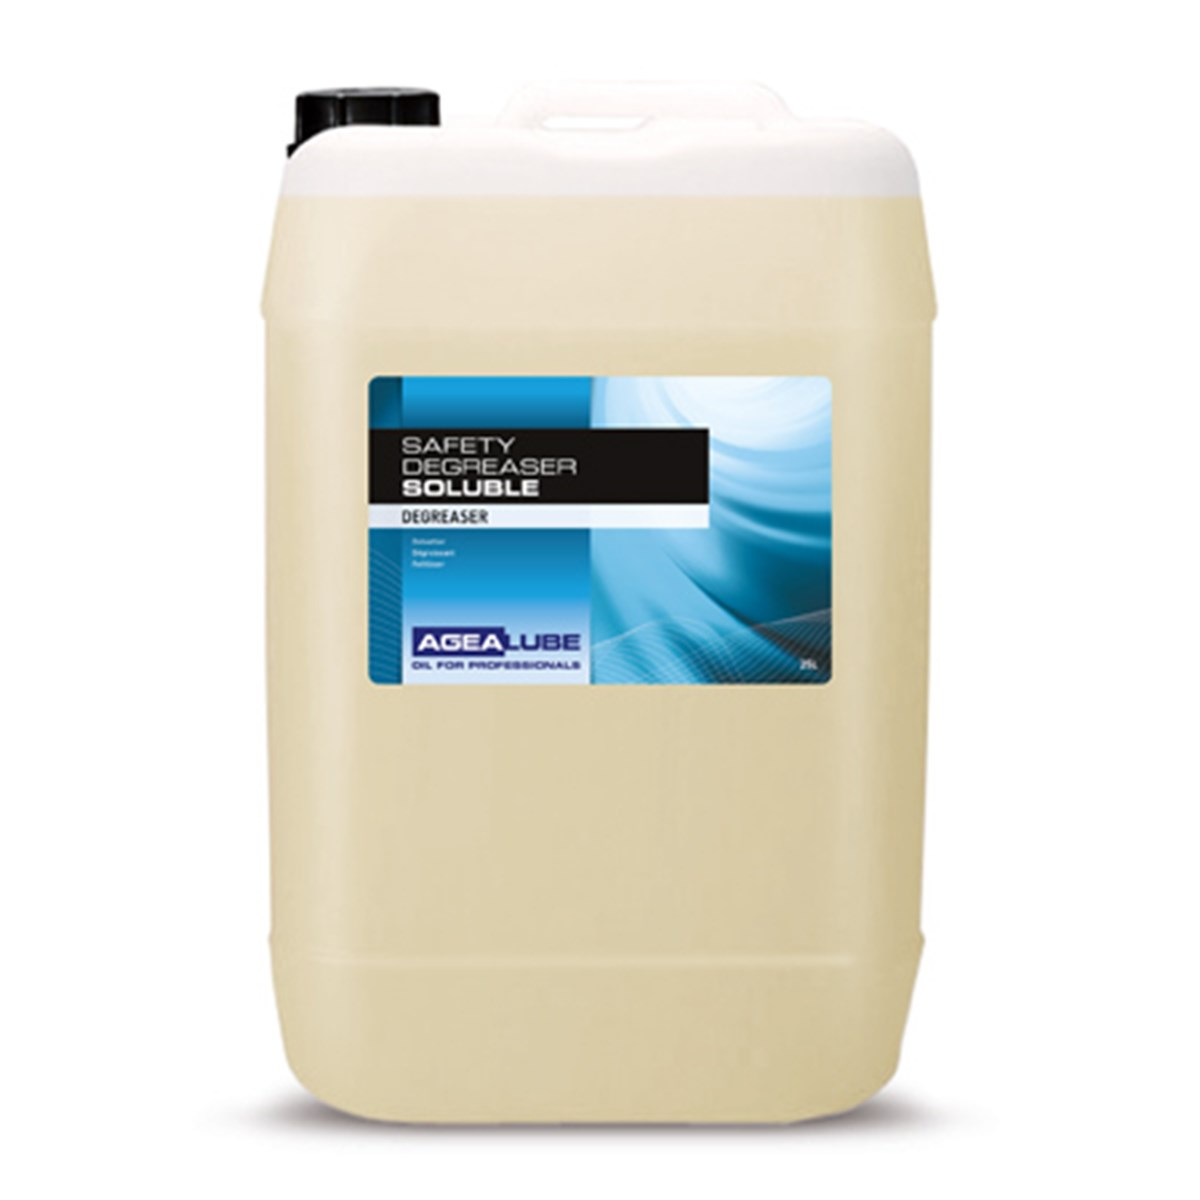 Agealube safety degreaser soluble 25l